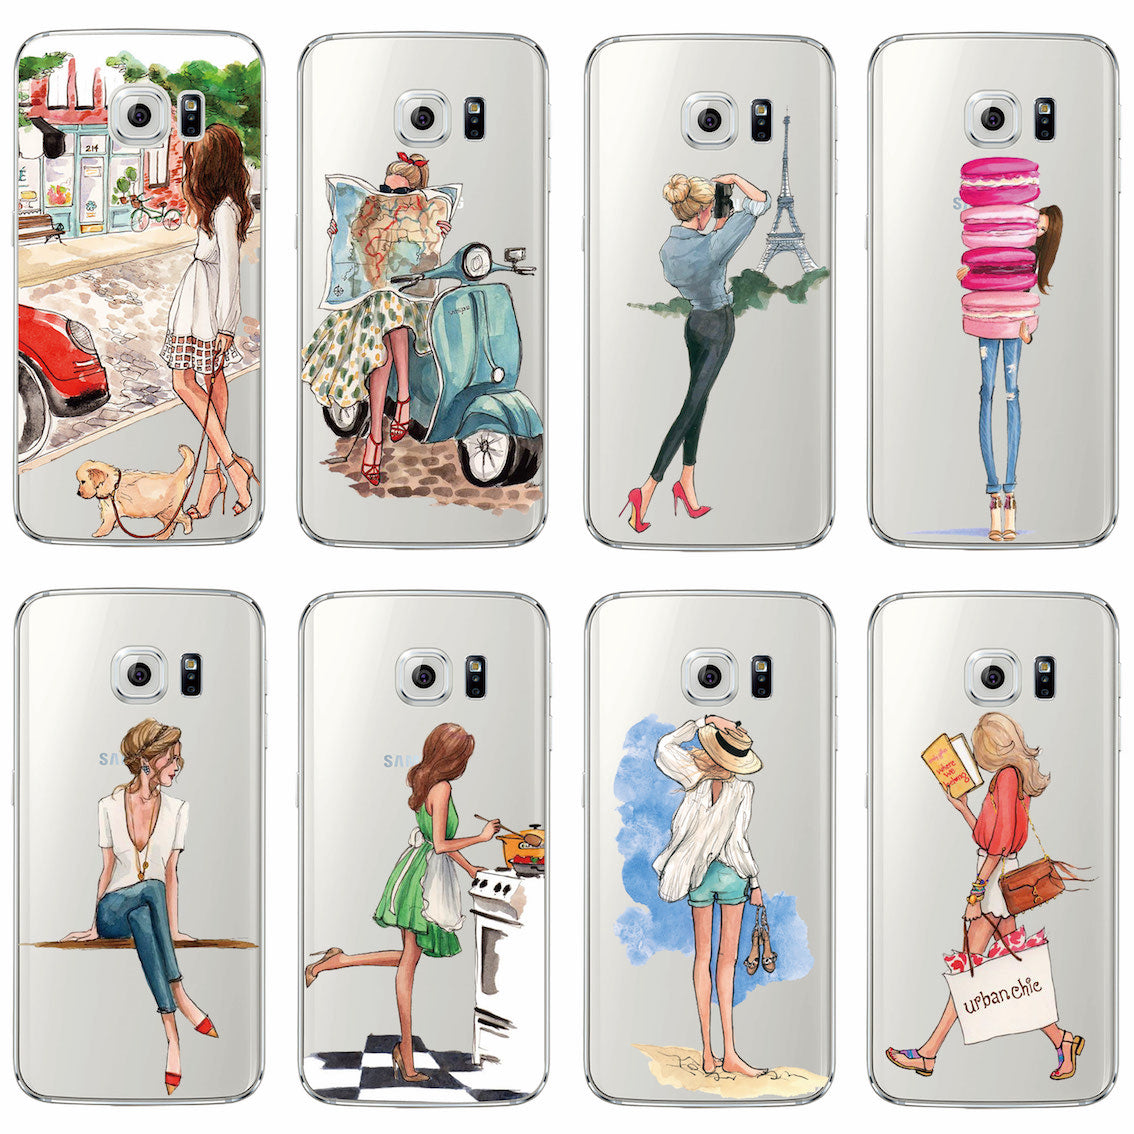 Summer Phone Covers for Samsung Galaxy S6, S7, edge A3 A5 S8 S8Plus Phone - The Voyage Collection